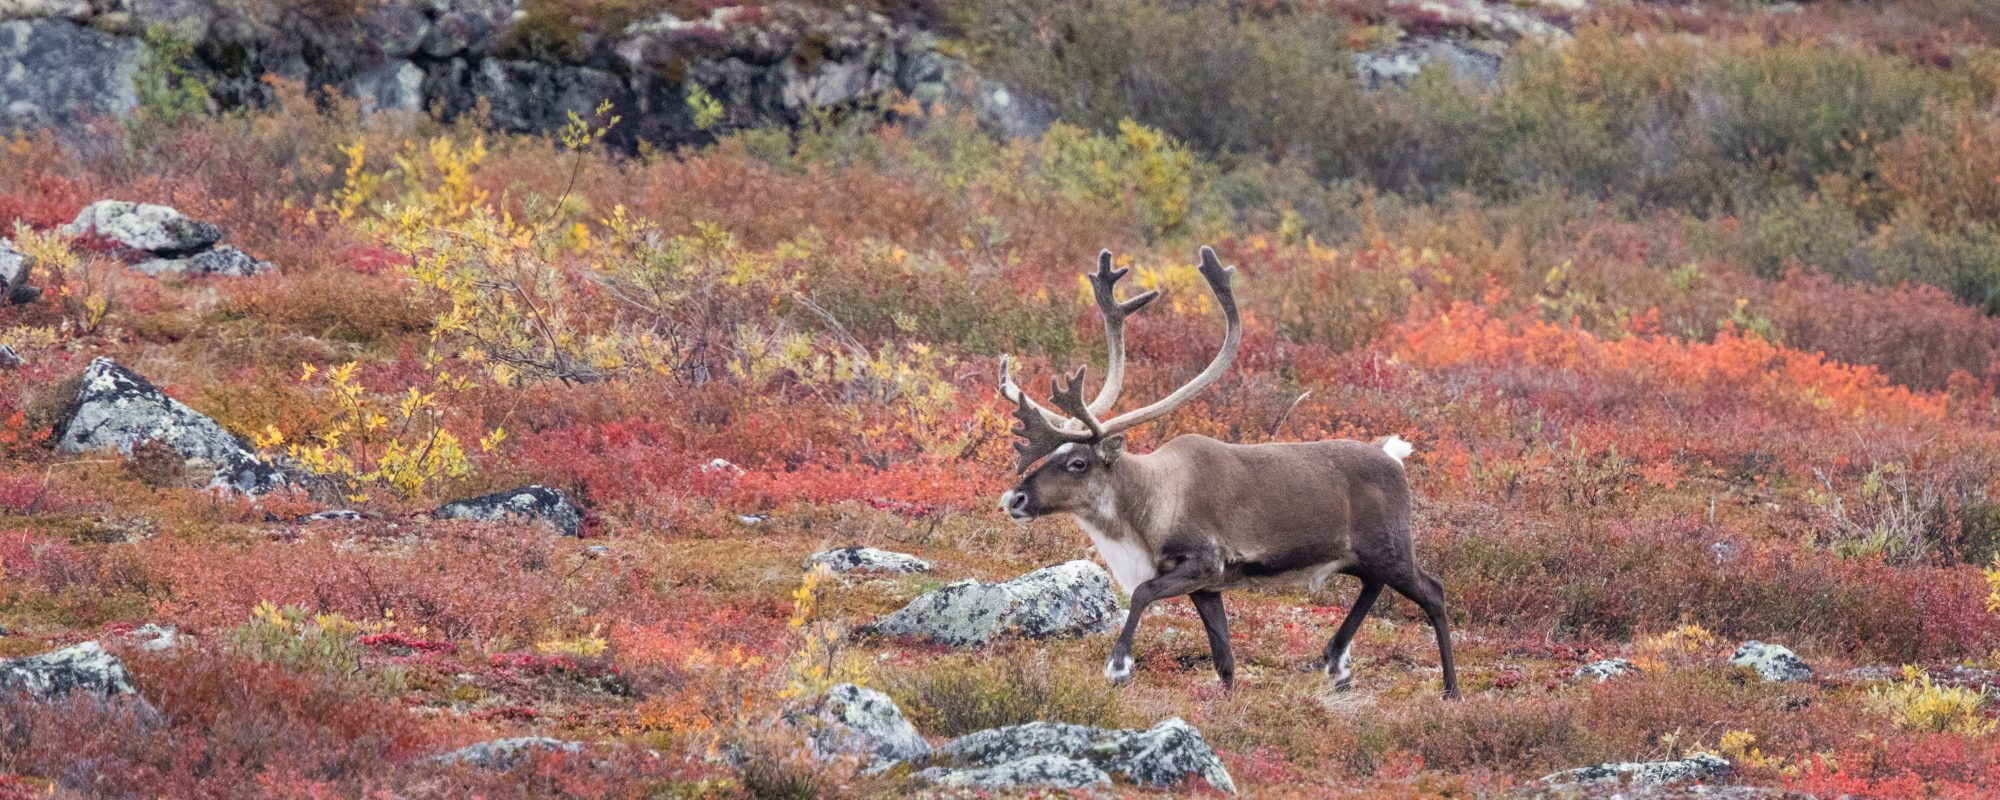 Caribou on barrens in autumn colours